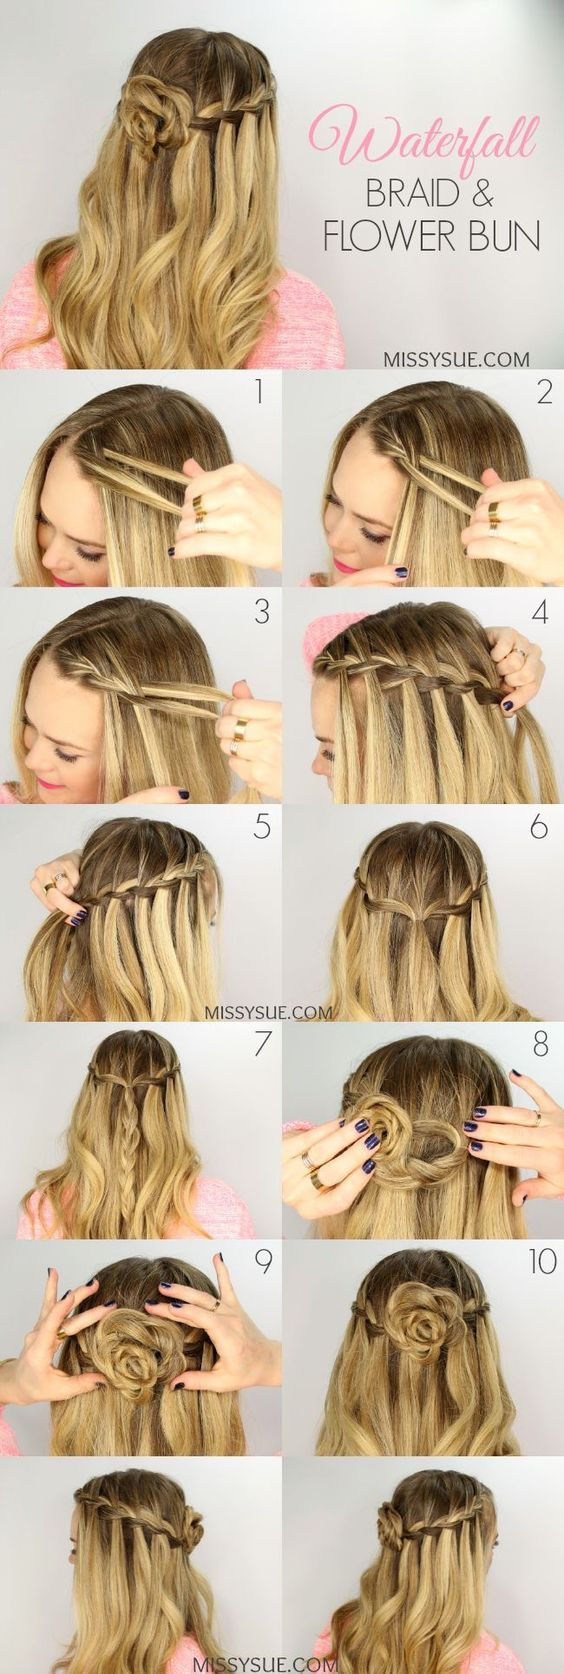 best images about uhairstylesu on pinterest braids lace braid